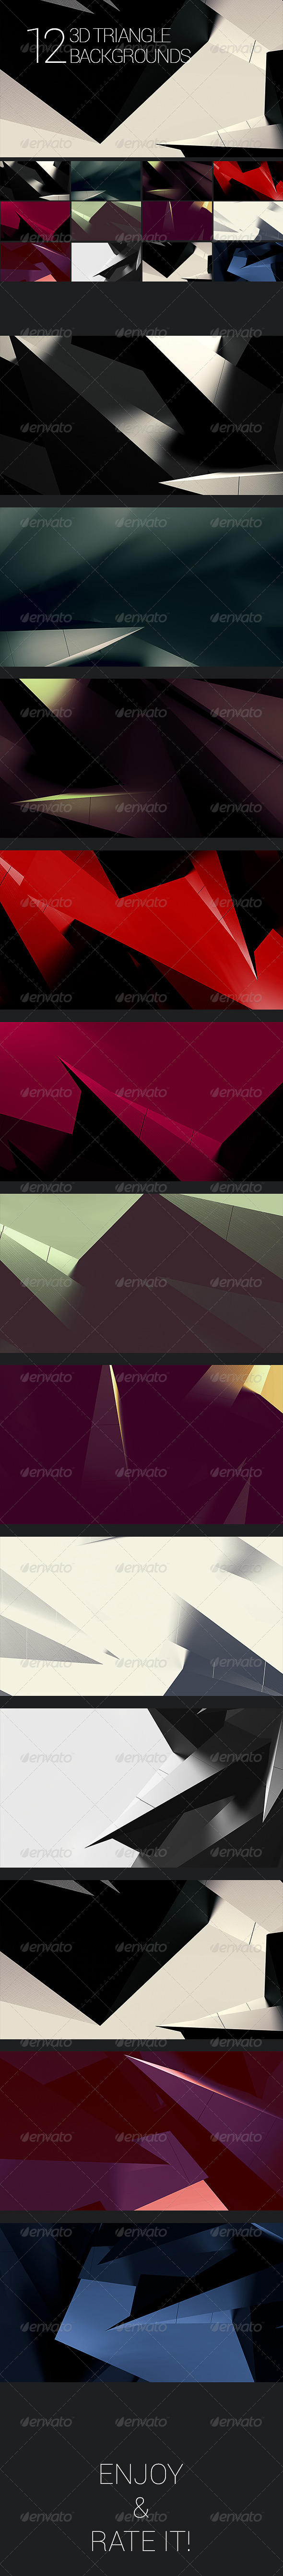 3D Polygon Backgrounds - Abstract Set 2 - Abstract Backgrounds